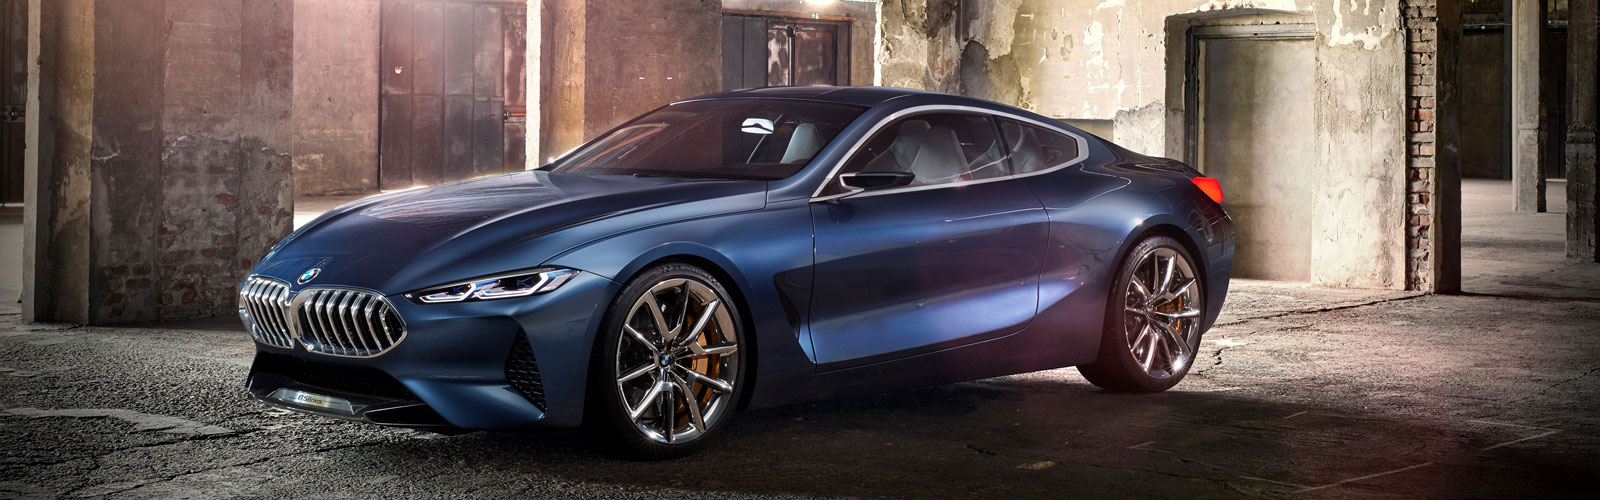 bmw_concept_8_series_3-HD